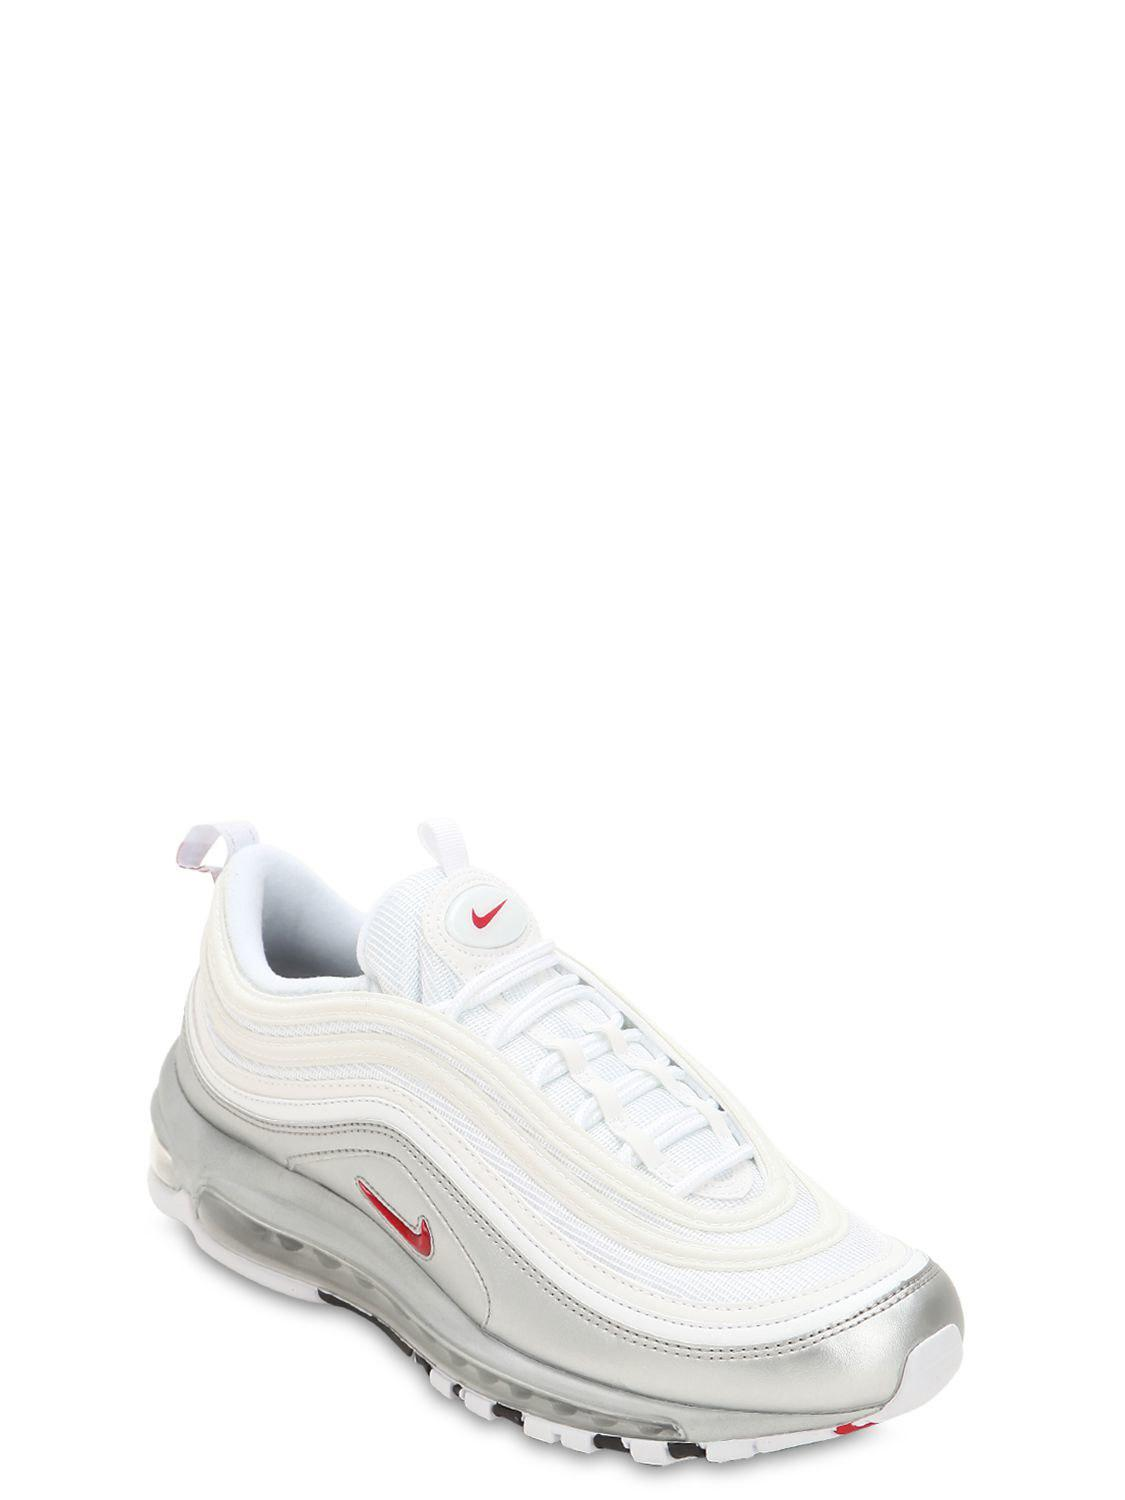 best sneakers f7f37 a033c Nike - White Air Max 97 Qs Sneakers for Men - Lyst. View fullscreen